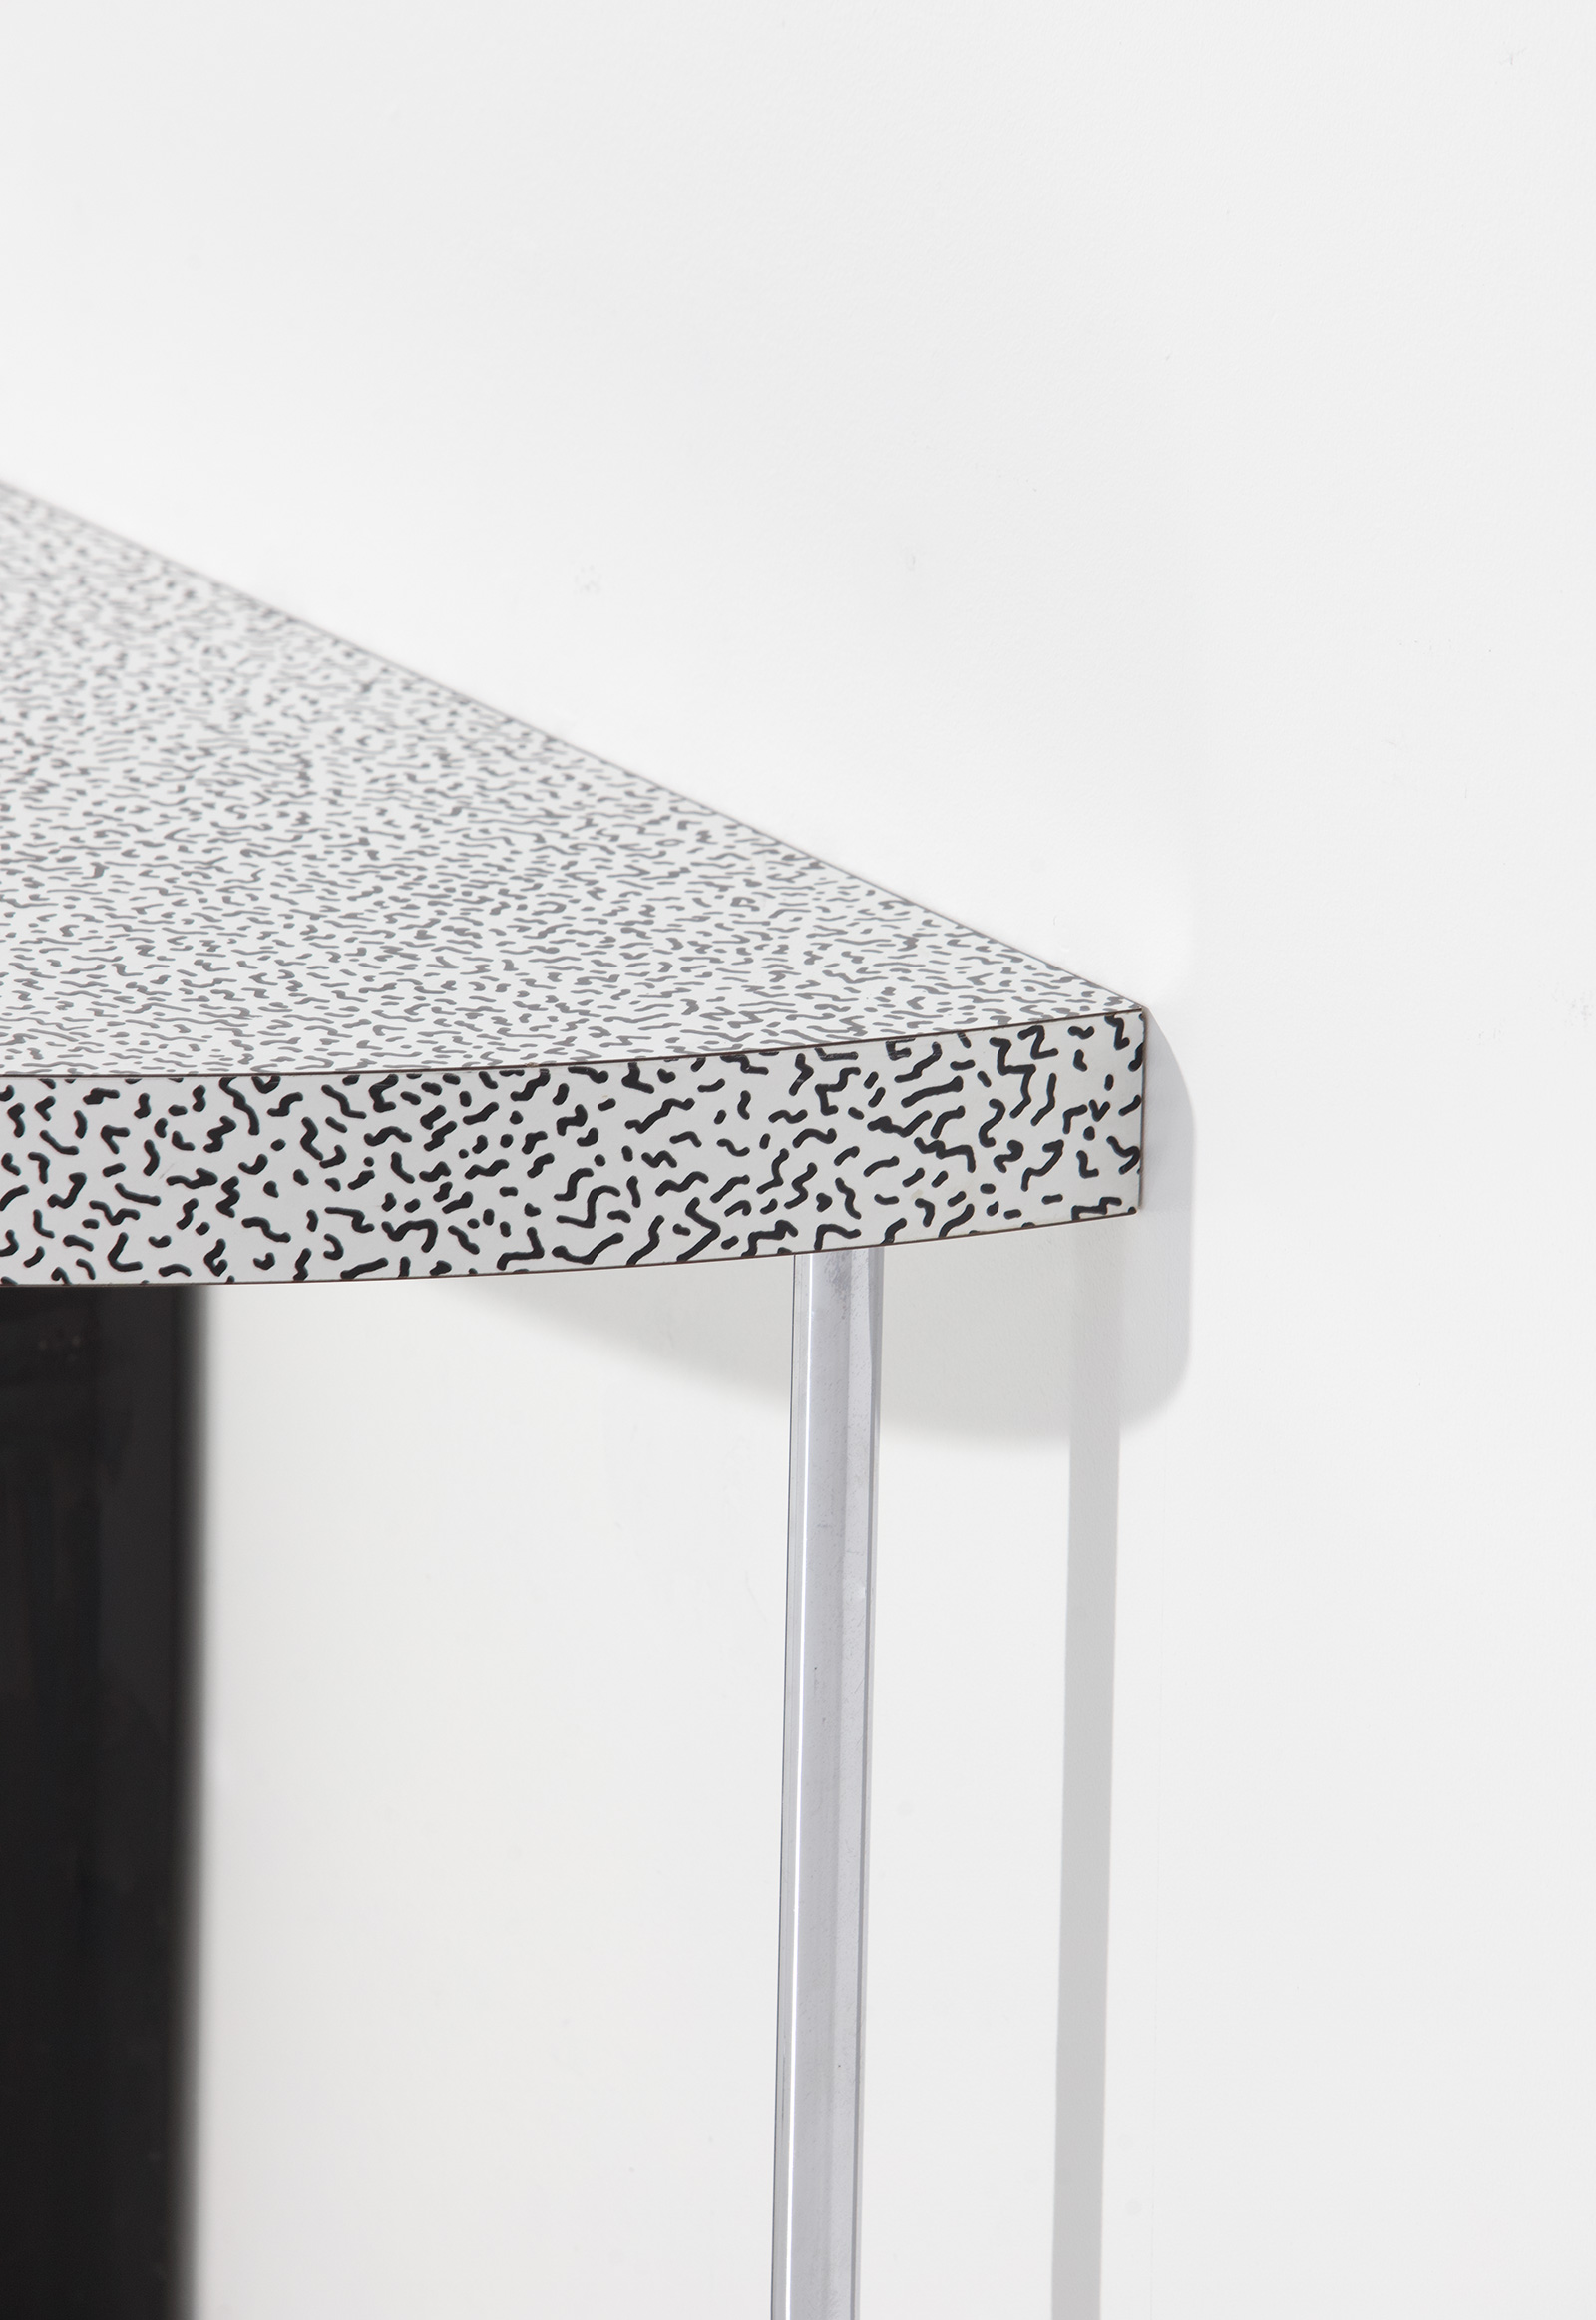 Ettore Sottsass Side Table for Zanottaimage 4